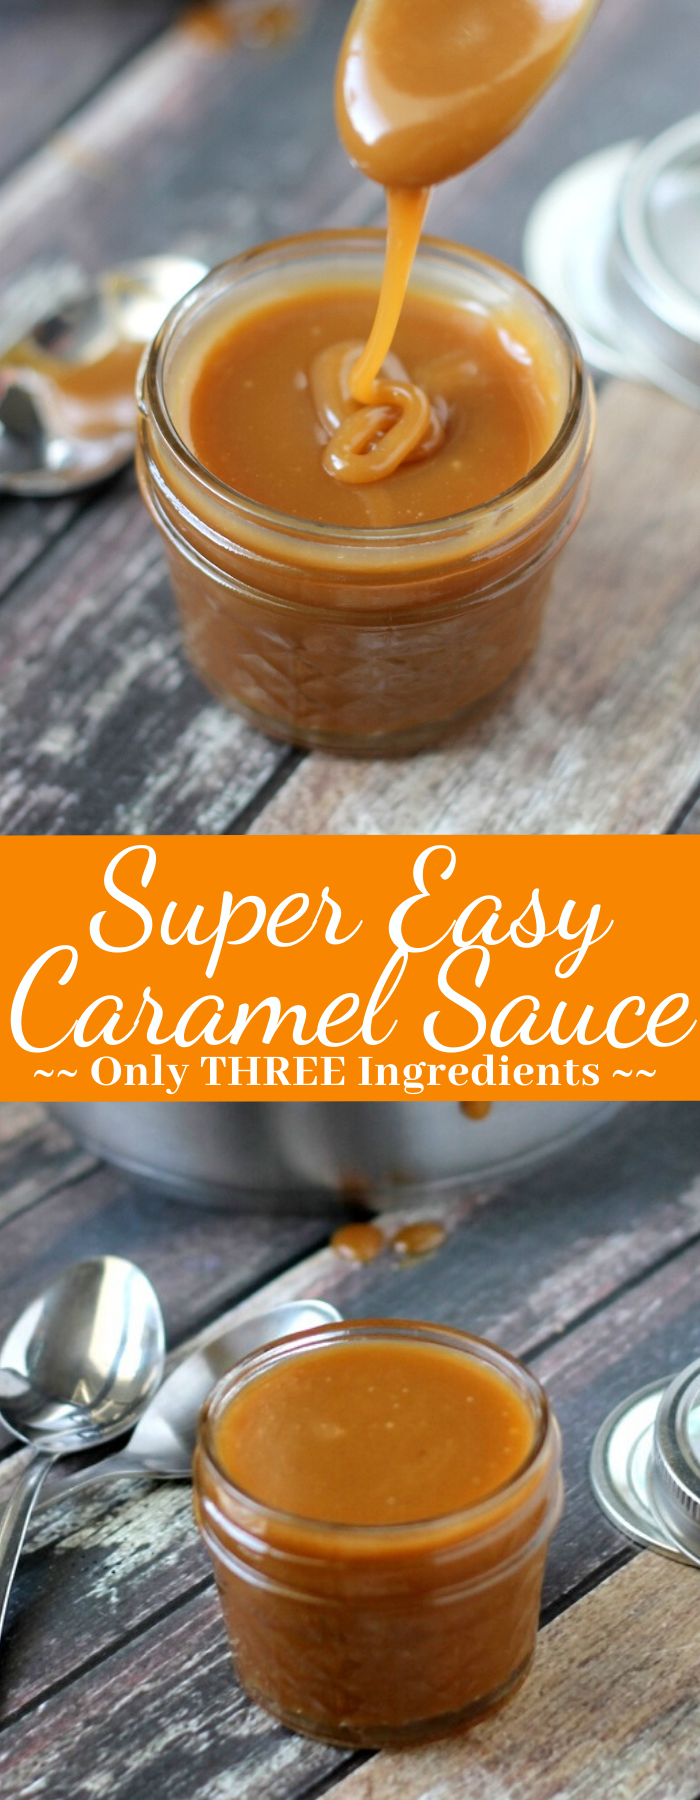 Perfect for desserts, this Super Easy Caramel Sauce has only 3 ingredients and takes only a few minutes to make! This caramel sauce is the BEST!